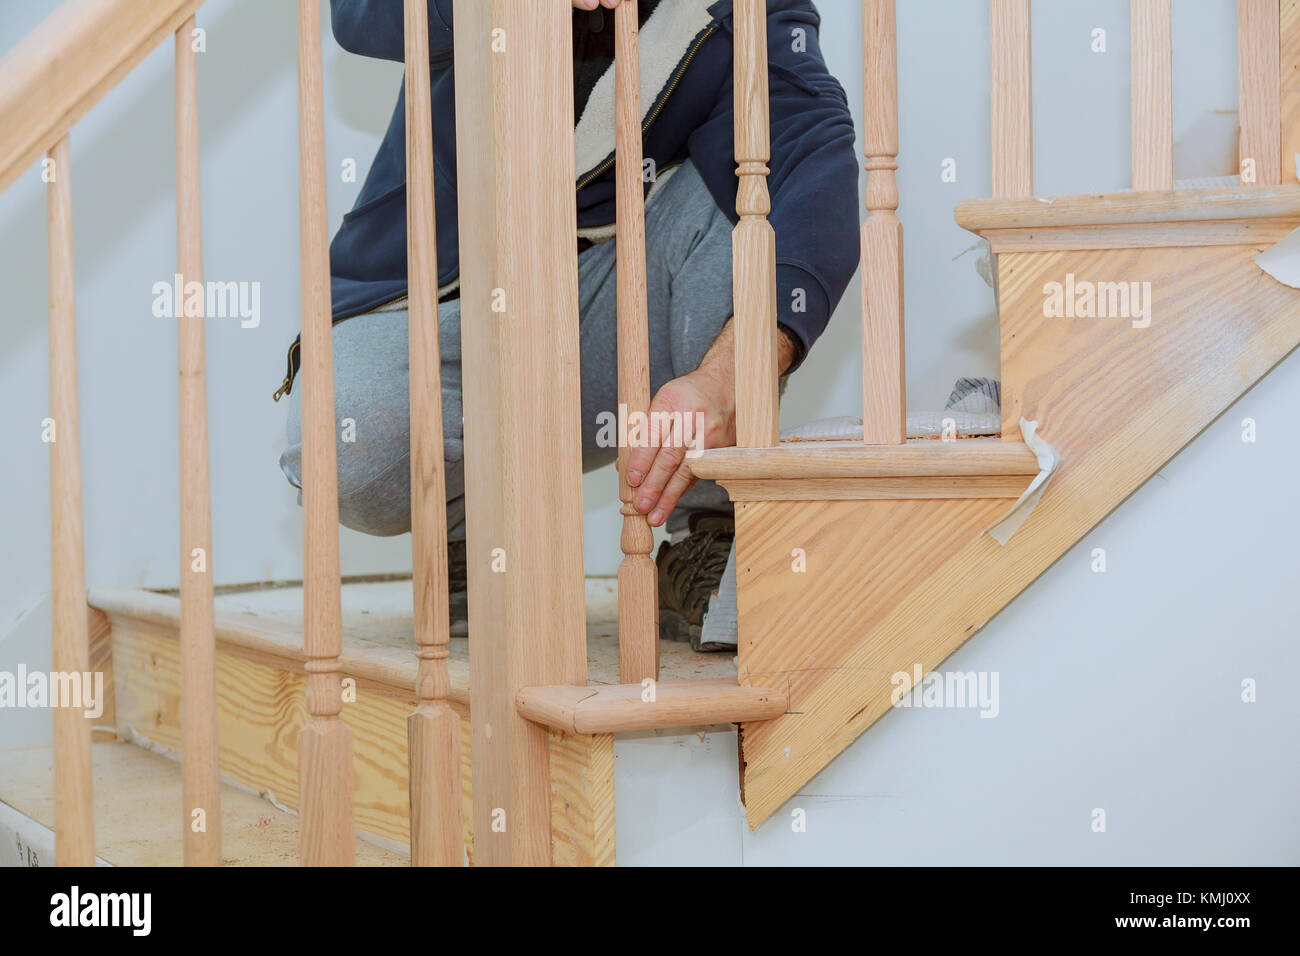 How To Install Stair Railing Kit Installation For Wooden Railing For Stairs